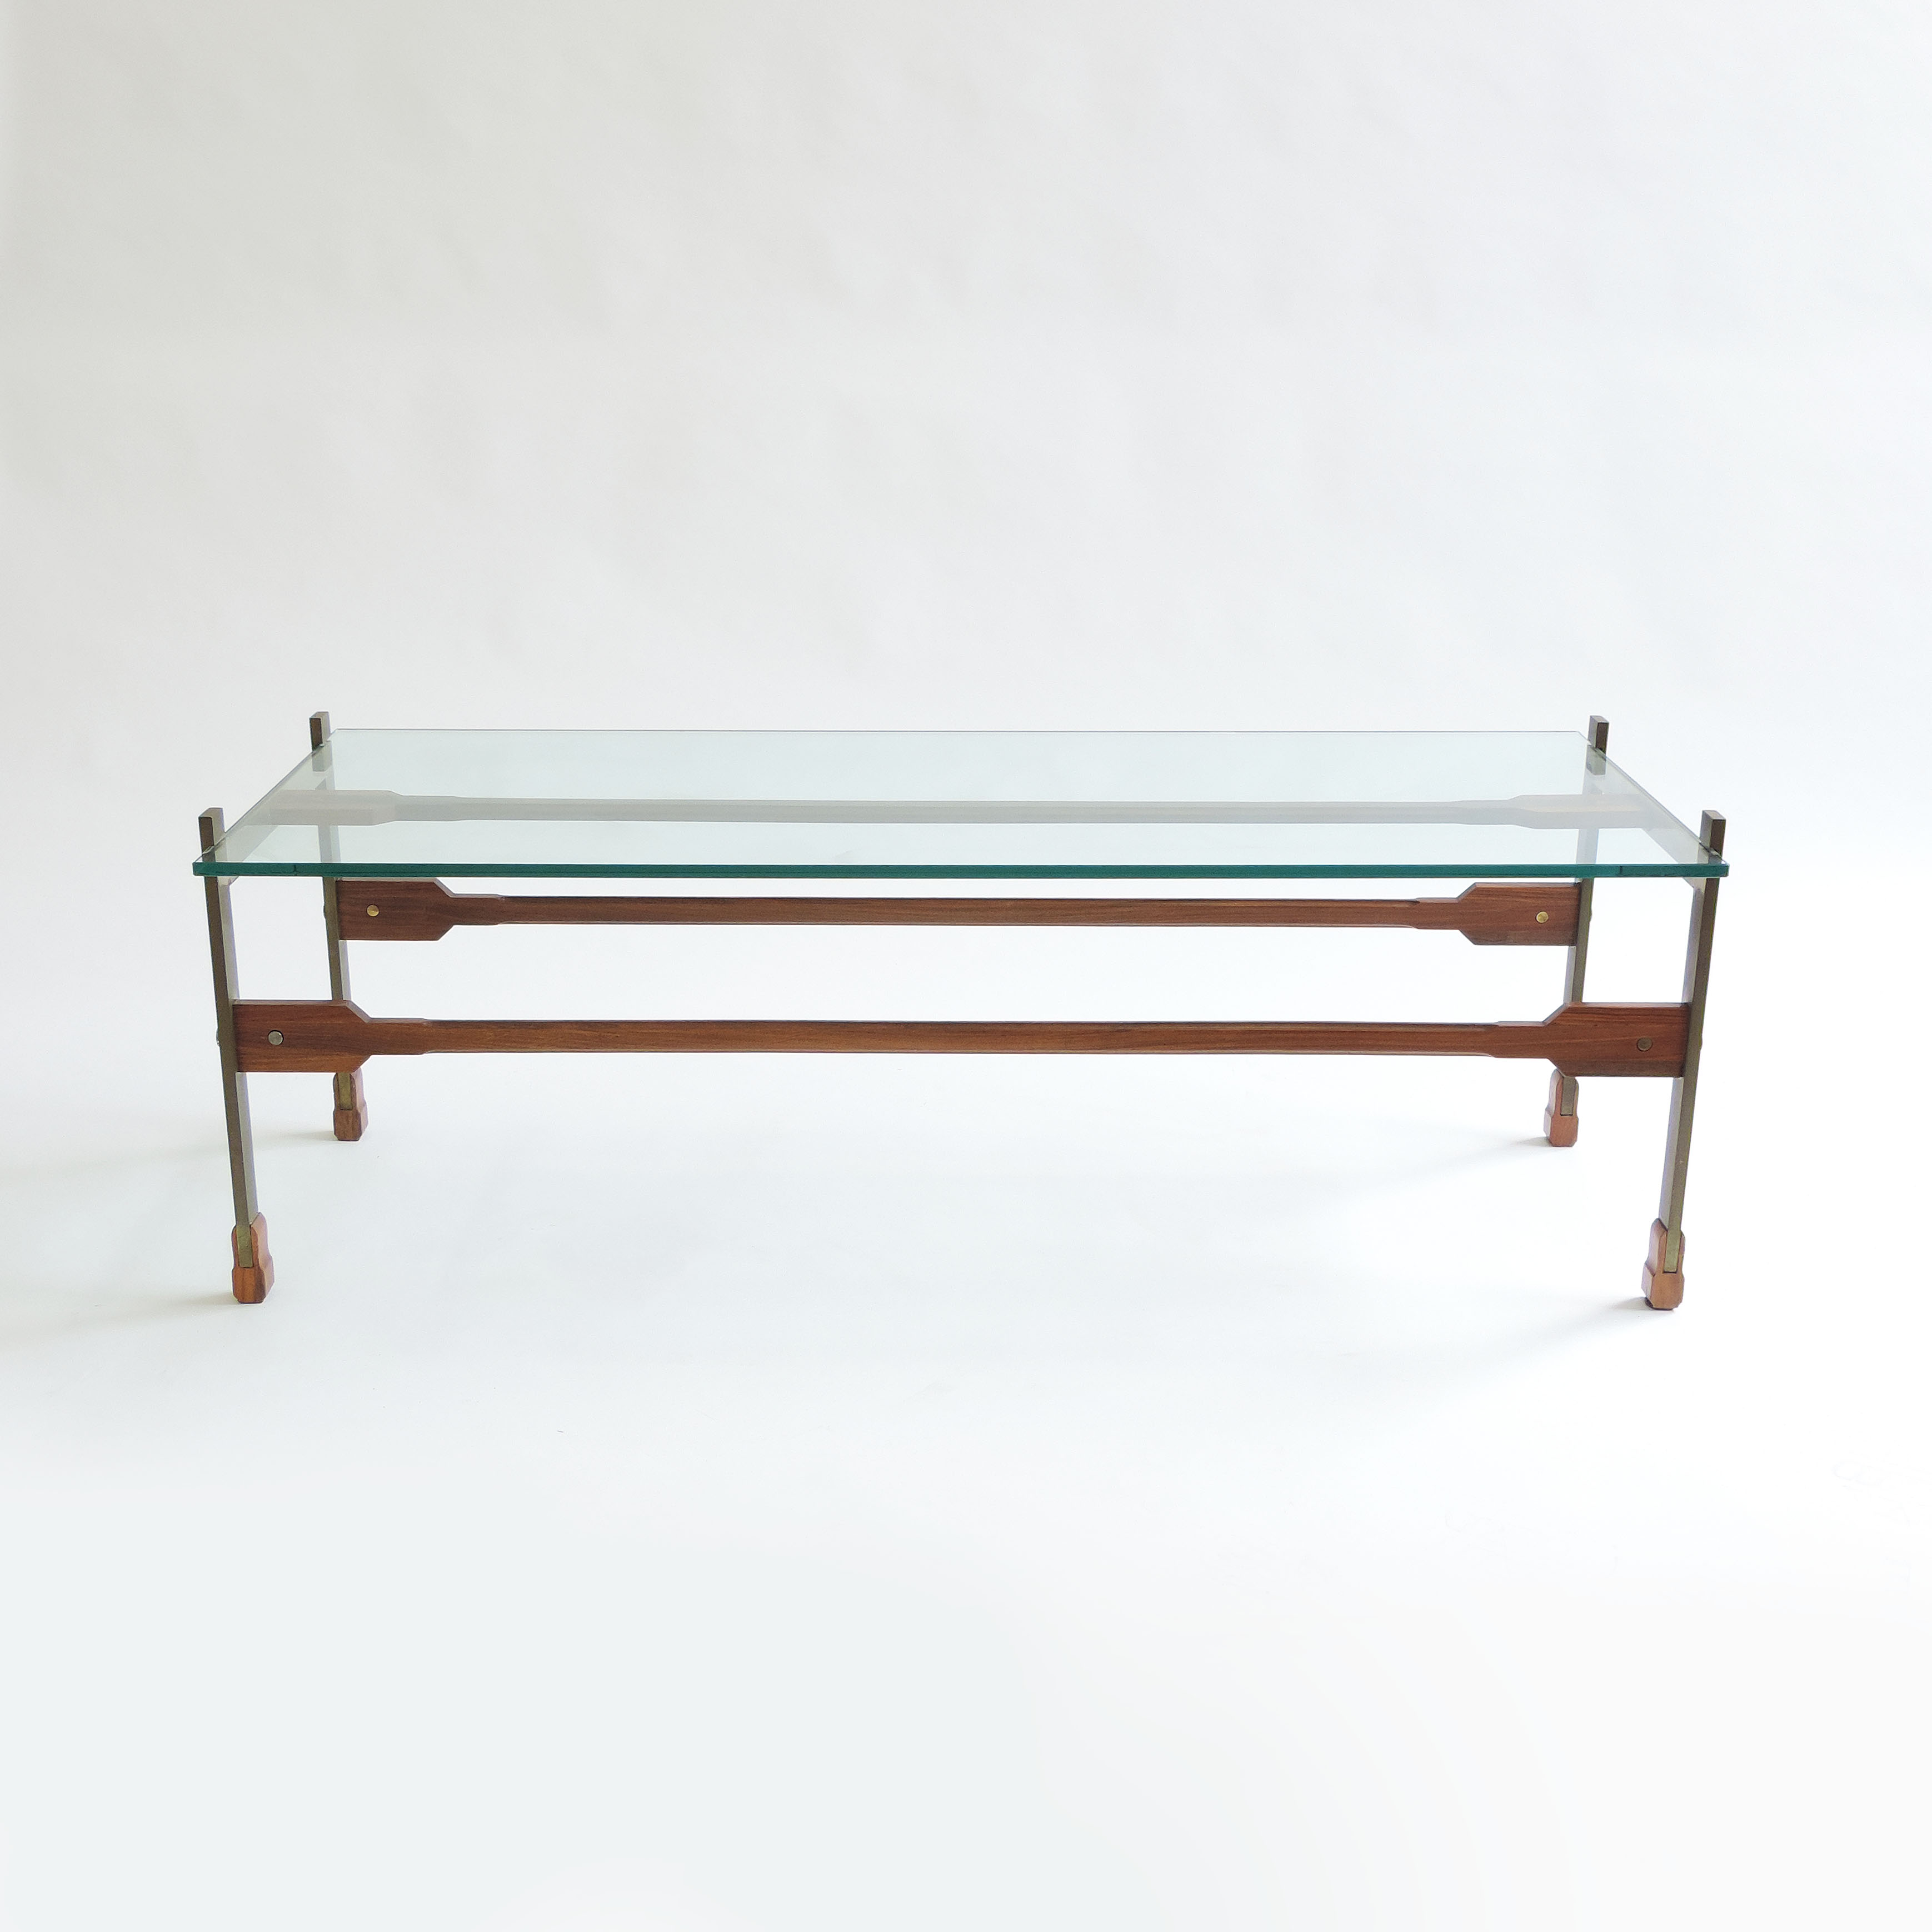 coffee table Santambrogio & De Berti italian design